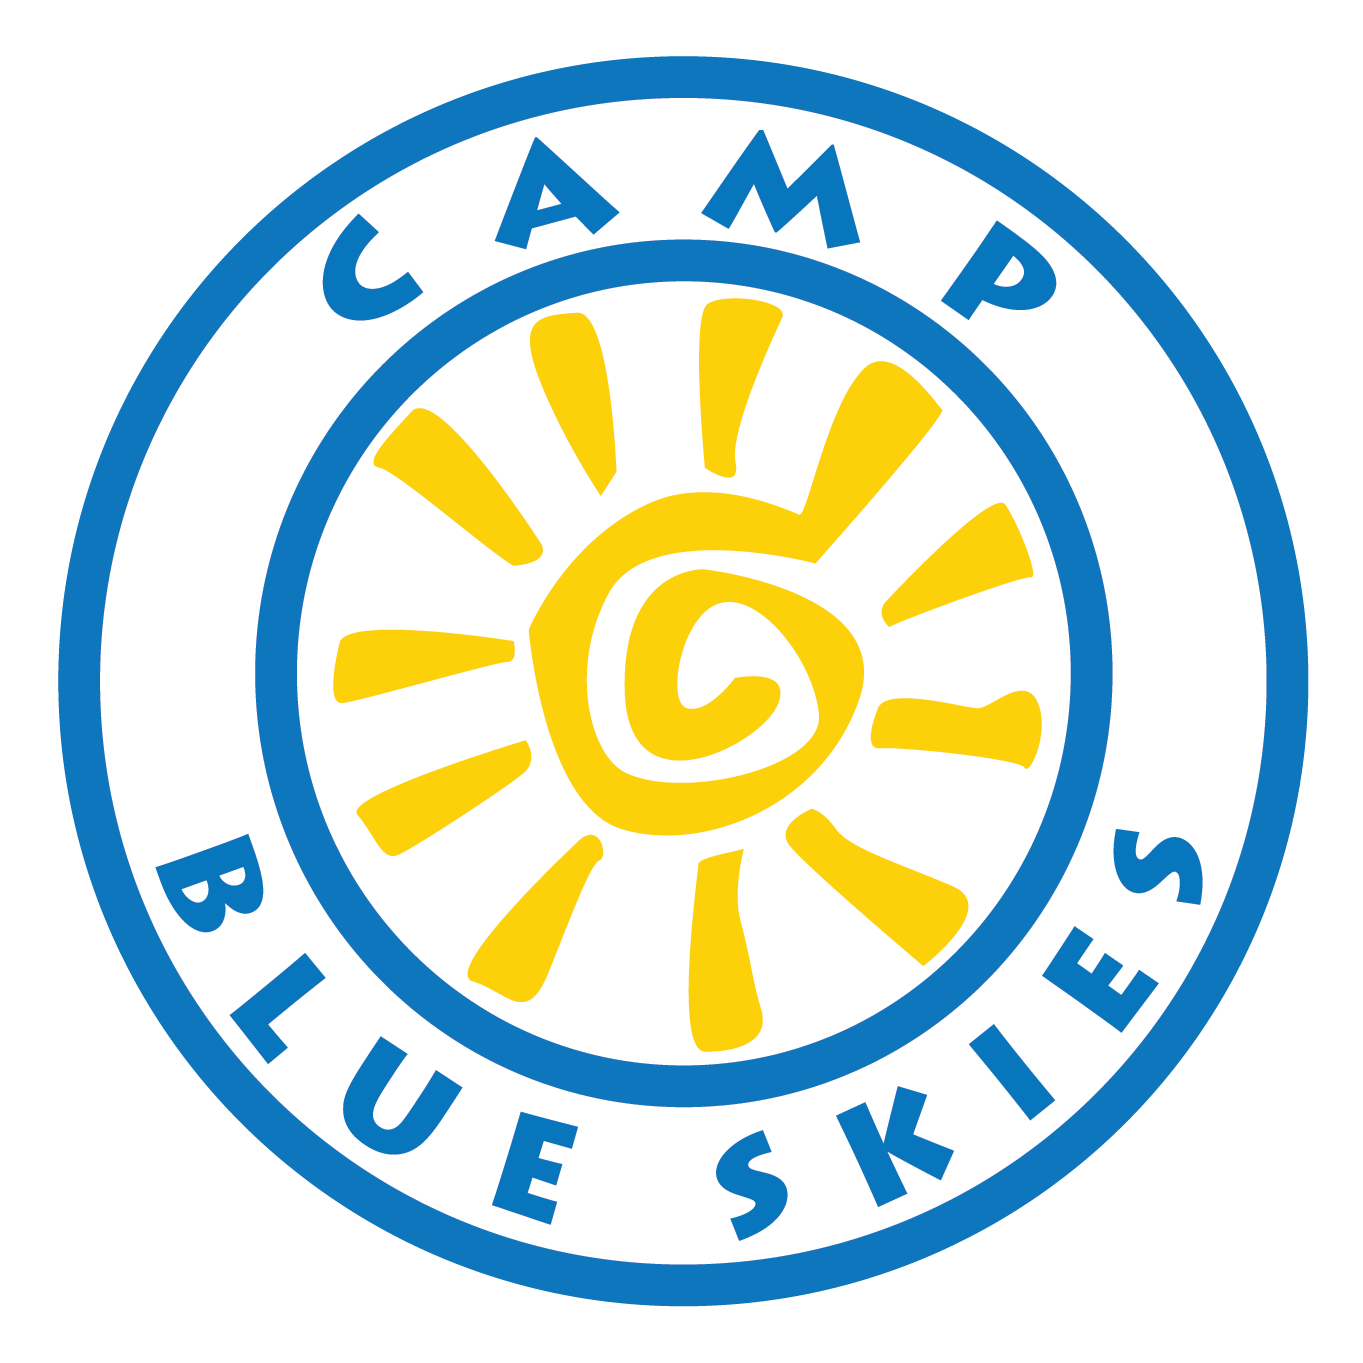 Camp Blue Skies Foundation